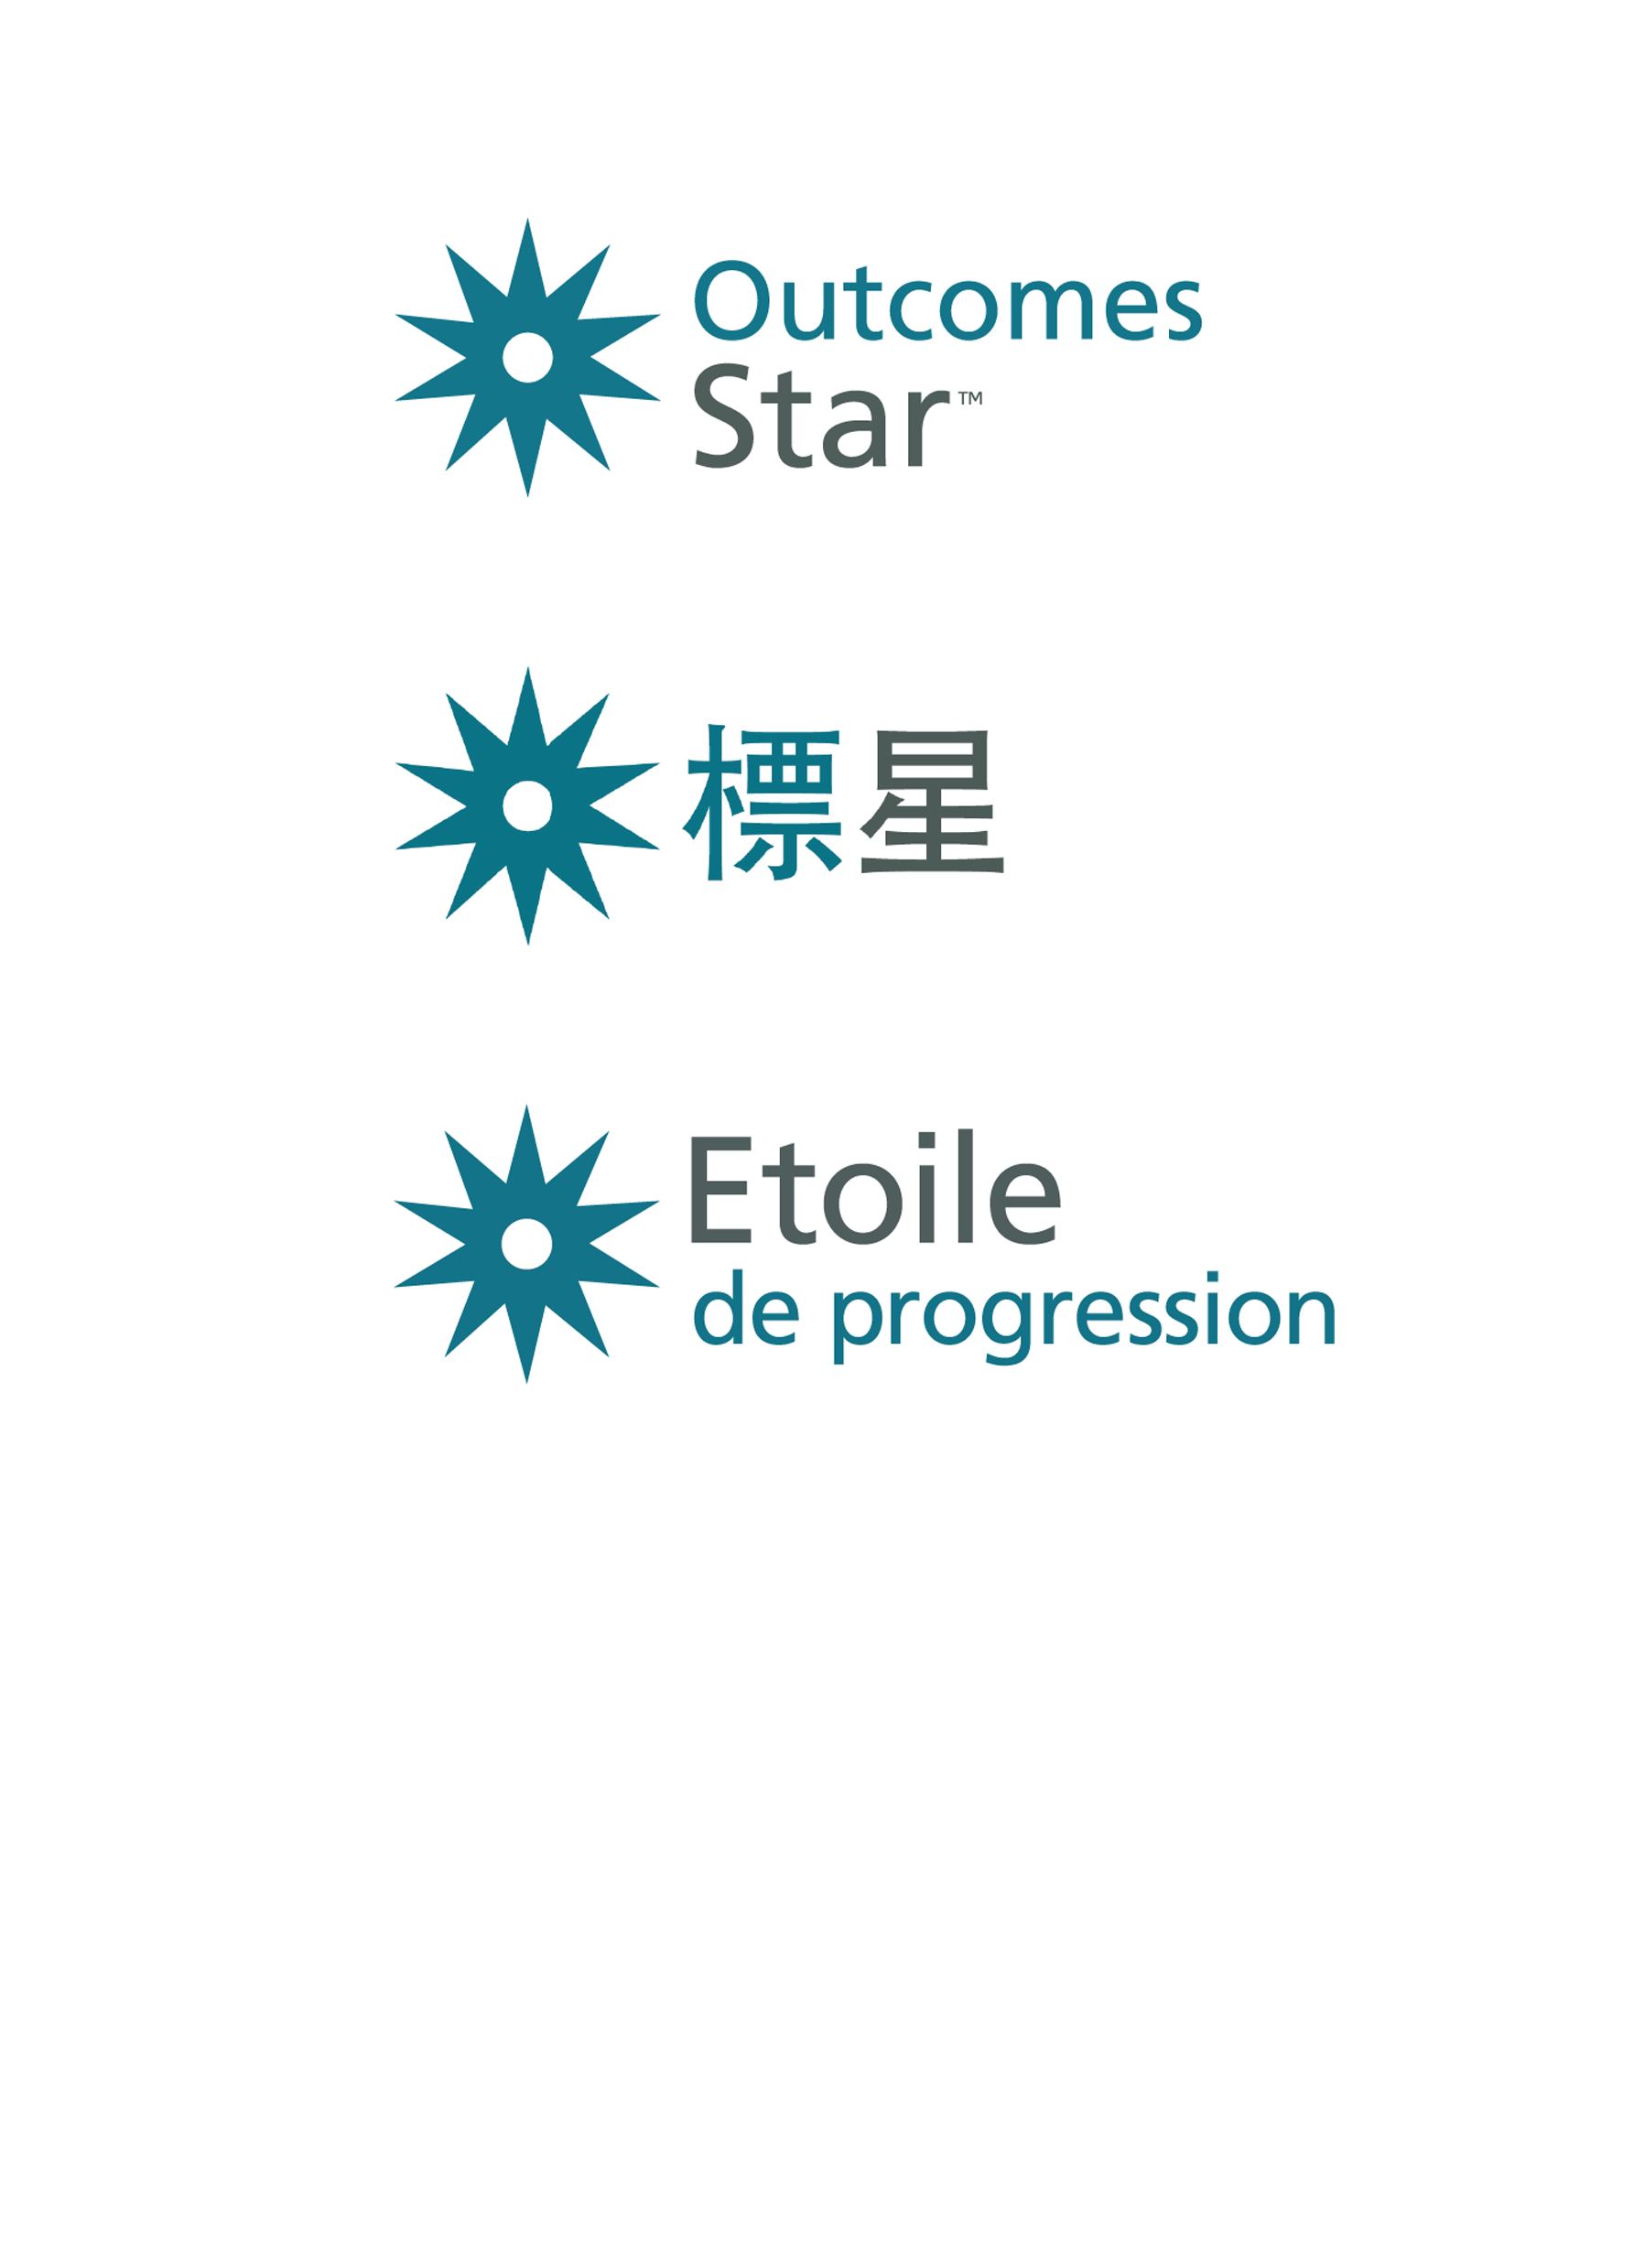 Outcomes-Star-Logos.png